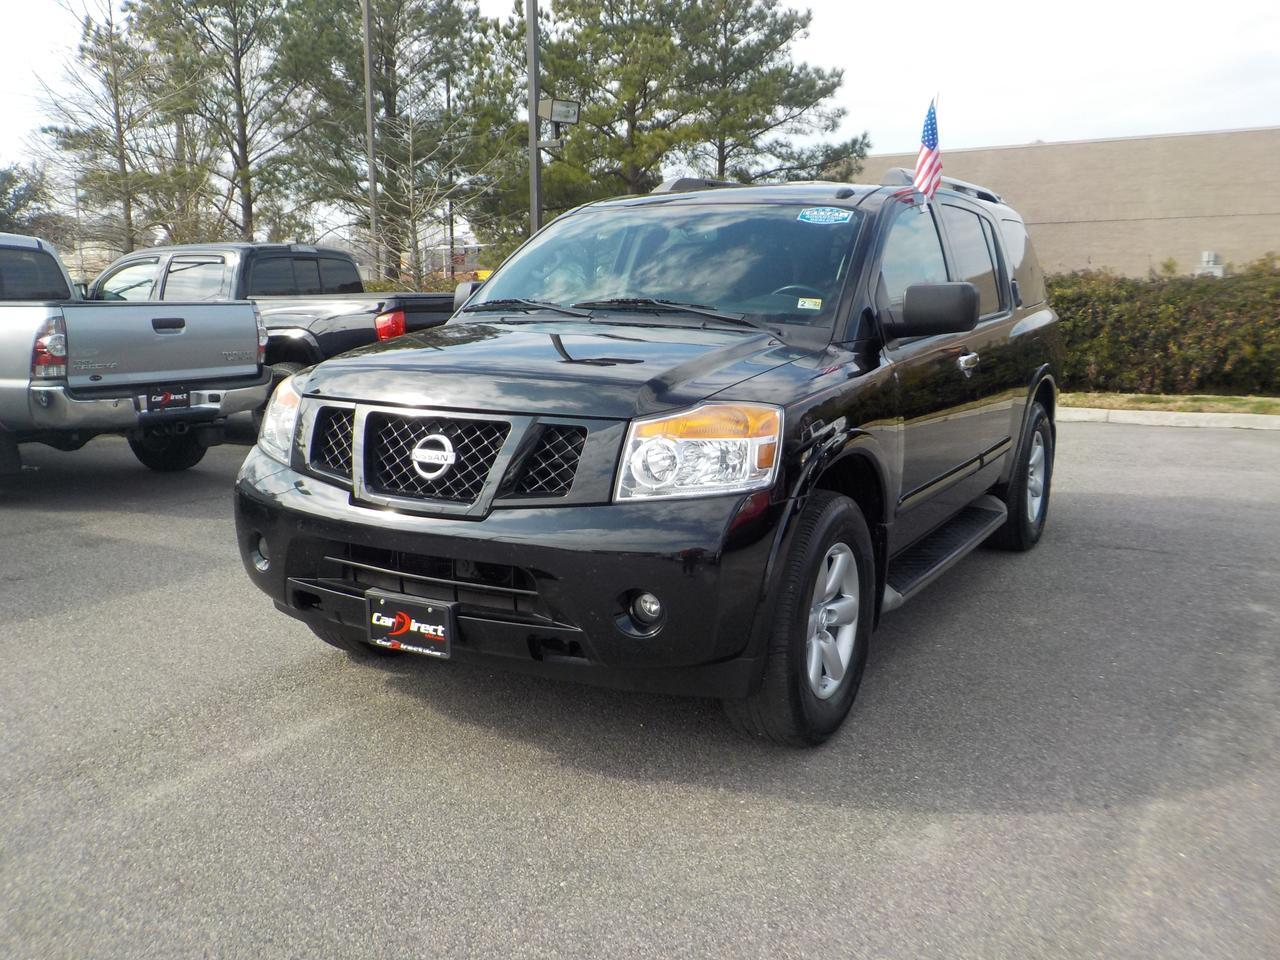 2013 NISSAN ARMADA SV 4X4, DVD ENTERTAINMENT, BLUETOOTH CAPABILITIES, TOW PACKAGE, BOSE SOUND SYSTEM, ONLY 96K MILES! Virginia Beach VA